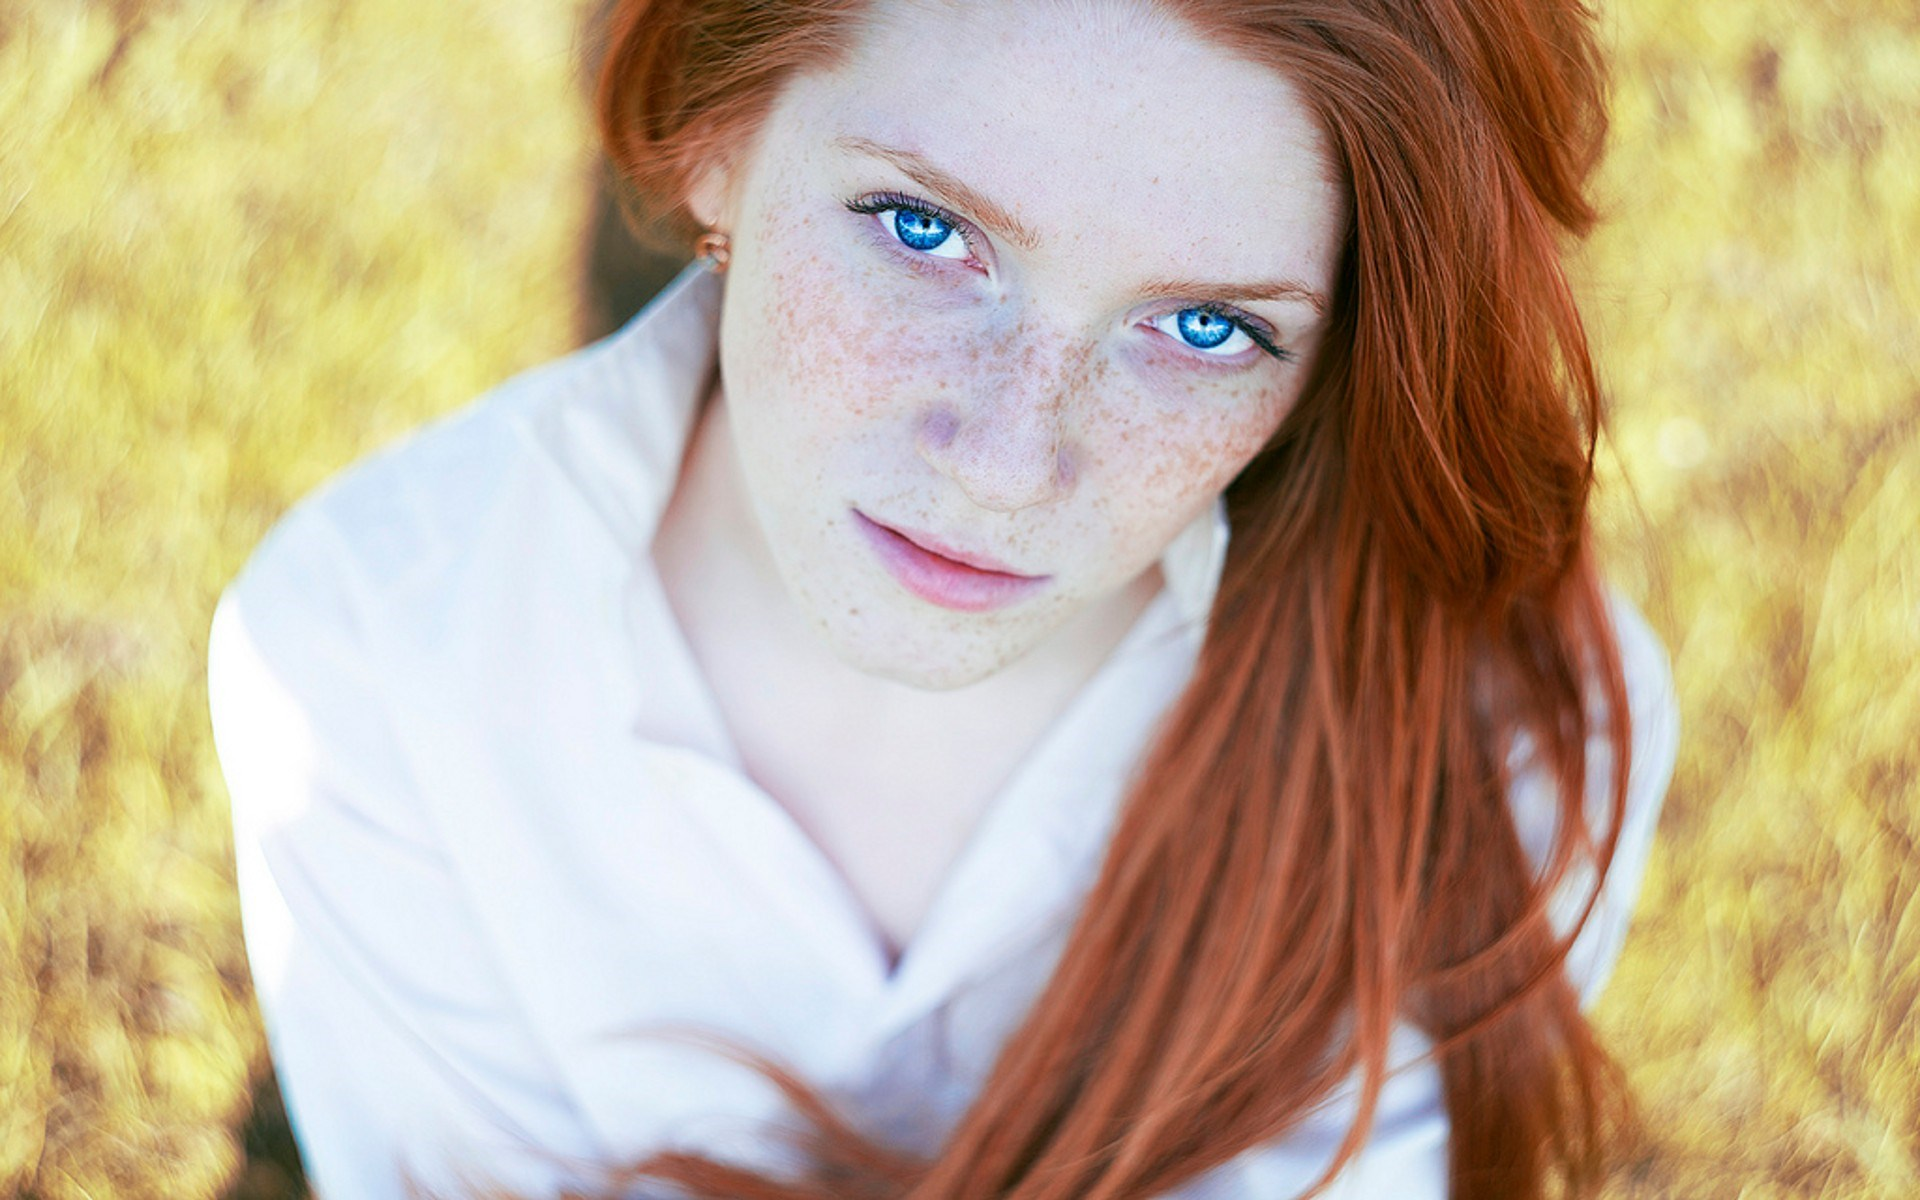 That redhead girl with red eyes that would